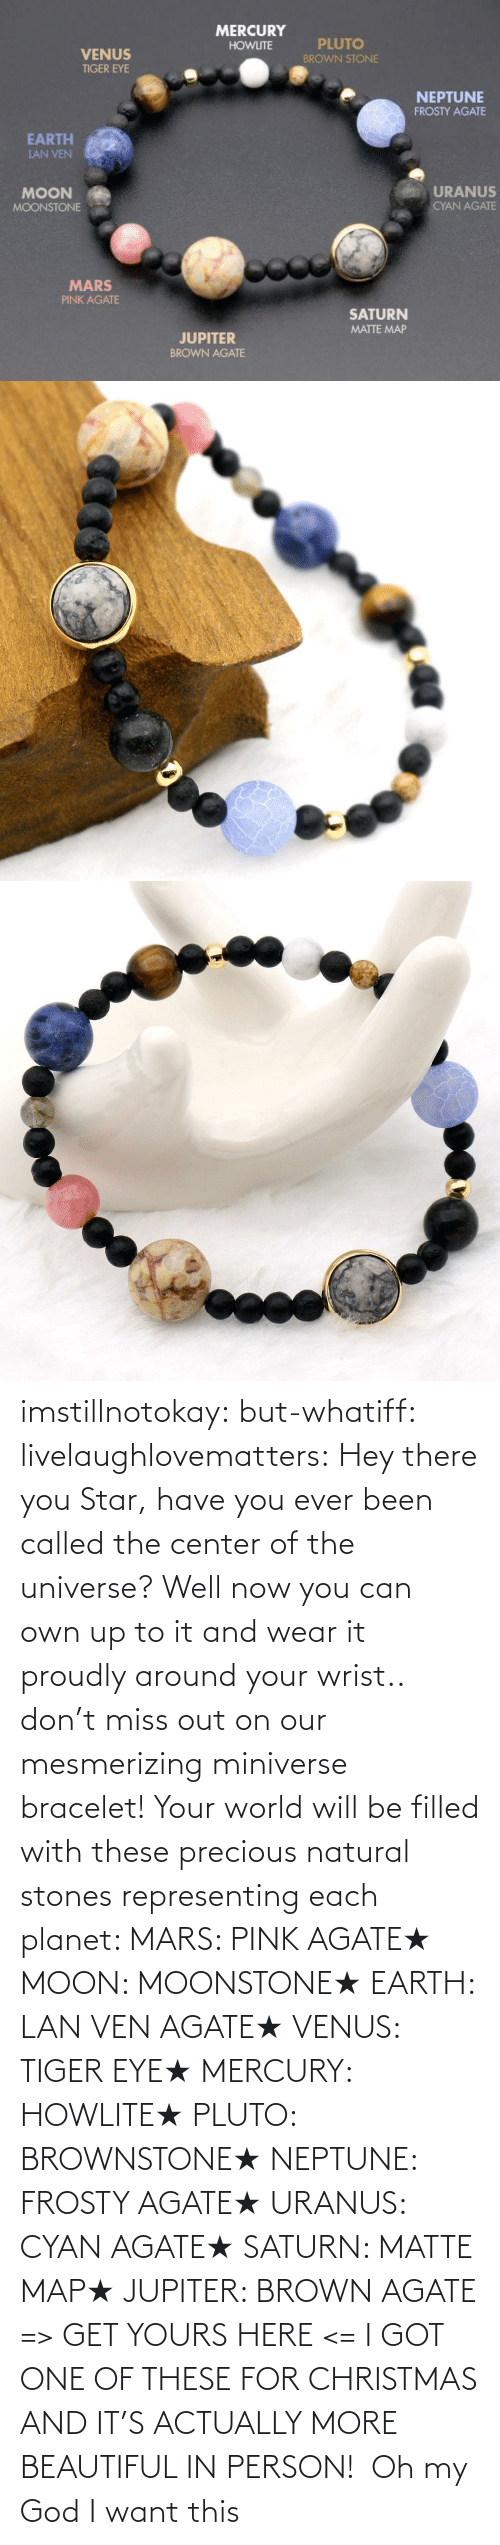 Mercury: imstillnotokay: but-whatiff:  livelaughlovematters:  Hey there you Star, have you ever been called the center of the universe? Well now you can own up to it and wear it proudly around your wrist.. don't miss out on our mesmerizing miniverse bracelet! Your world will be filled with these precious natural stones representing each planet:  MARS: PINK AGATE★ MOON: MOONSTONE★ EARTH: LAN VEN AGATE★ VENUS: TIGER EYE★ MERCURY: HOWLITE★ PLUTO: BROWNSTONE★ NEPTUNE: FROSTY AGATE★ URANUS: CYAN AGATE★ SATURN: MATTE MAP★ JUPITER: BROWN AGATE => GET YOURS HERE <=  I GOT ONE OF THESE FOR CHRISTMAS AND IT'S ACTUALLY MORE BEAUTIFUL IN PERSON!     Oh my God I want this